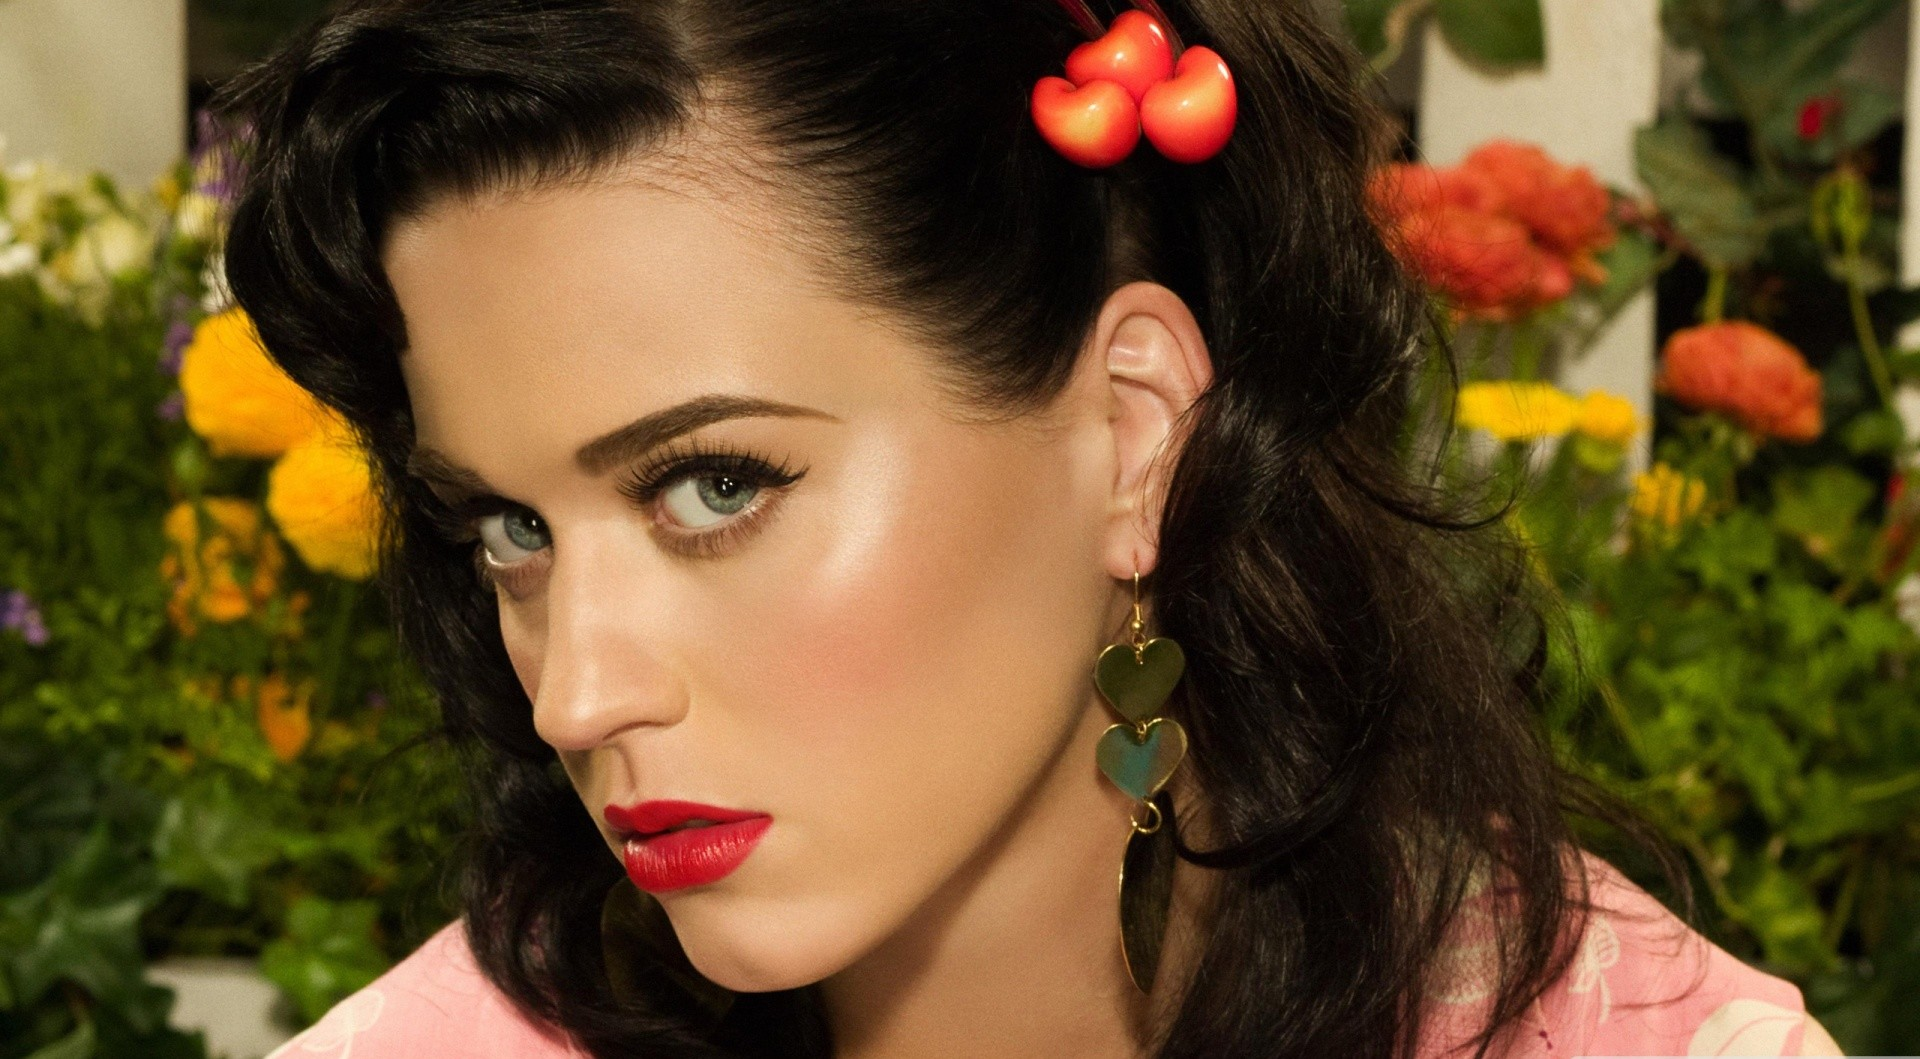 Katy Perry Wallpaper 24